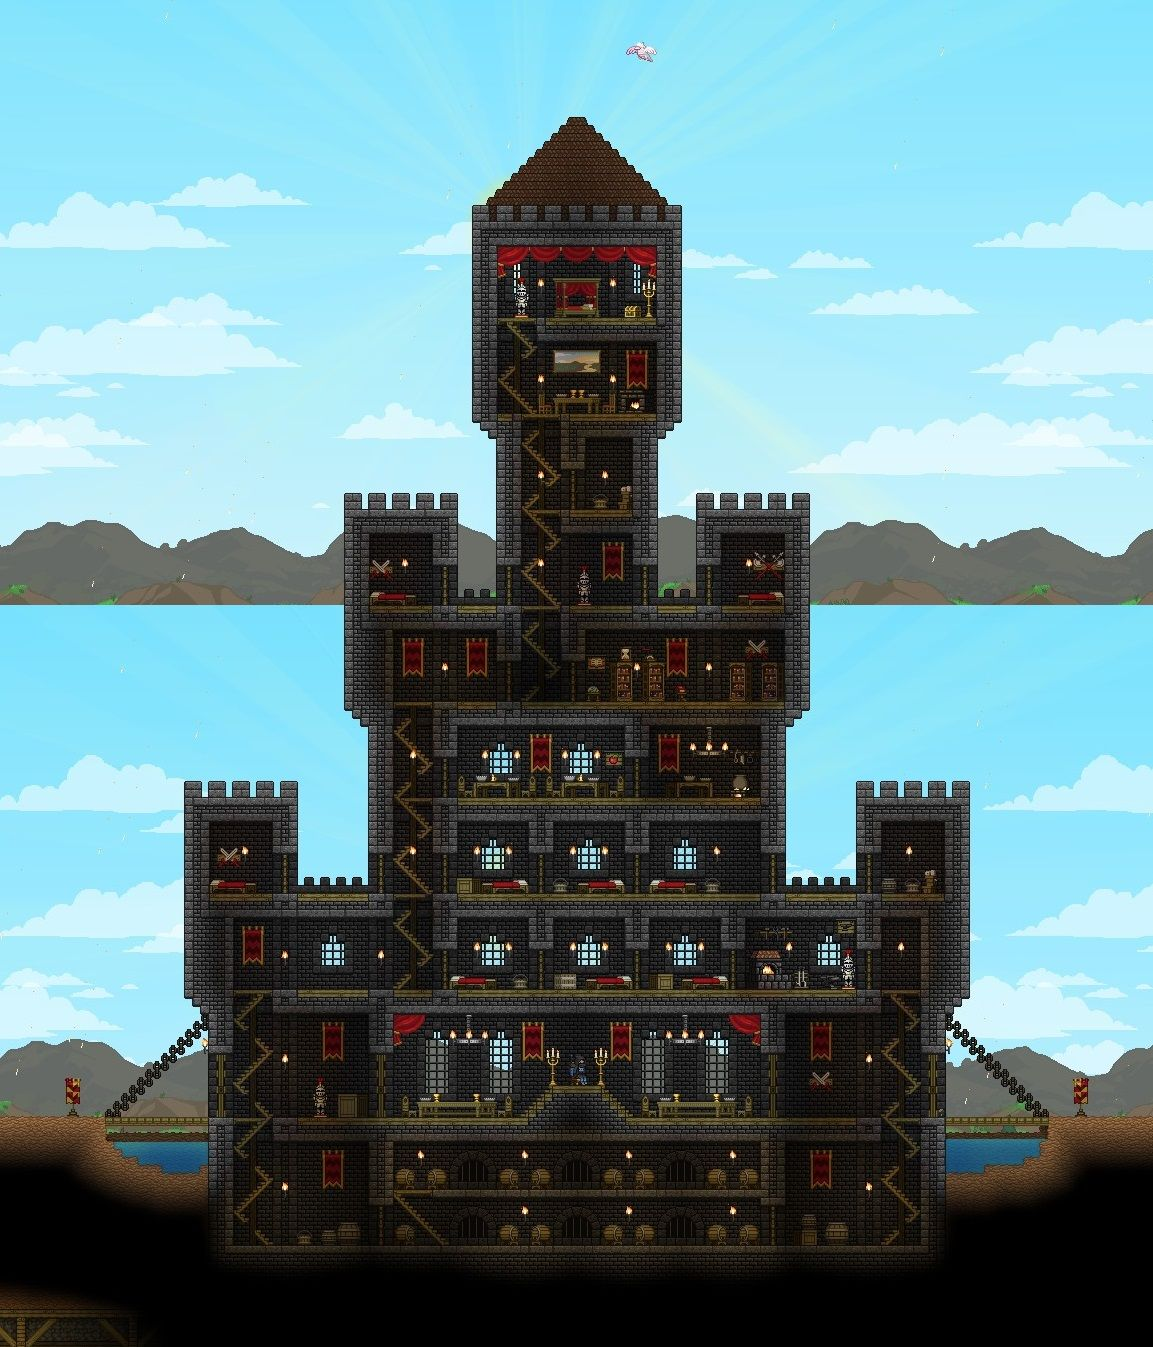 Terraria castle tower castle tower any tips terraria - Made Some Uppgrades Based On Suggestions Imgur Terrariaminecraft Ideasbuilding Ideascowgamingcastlesroom